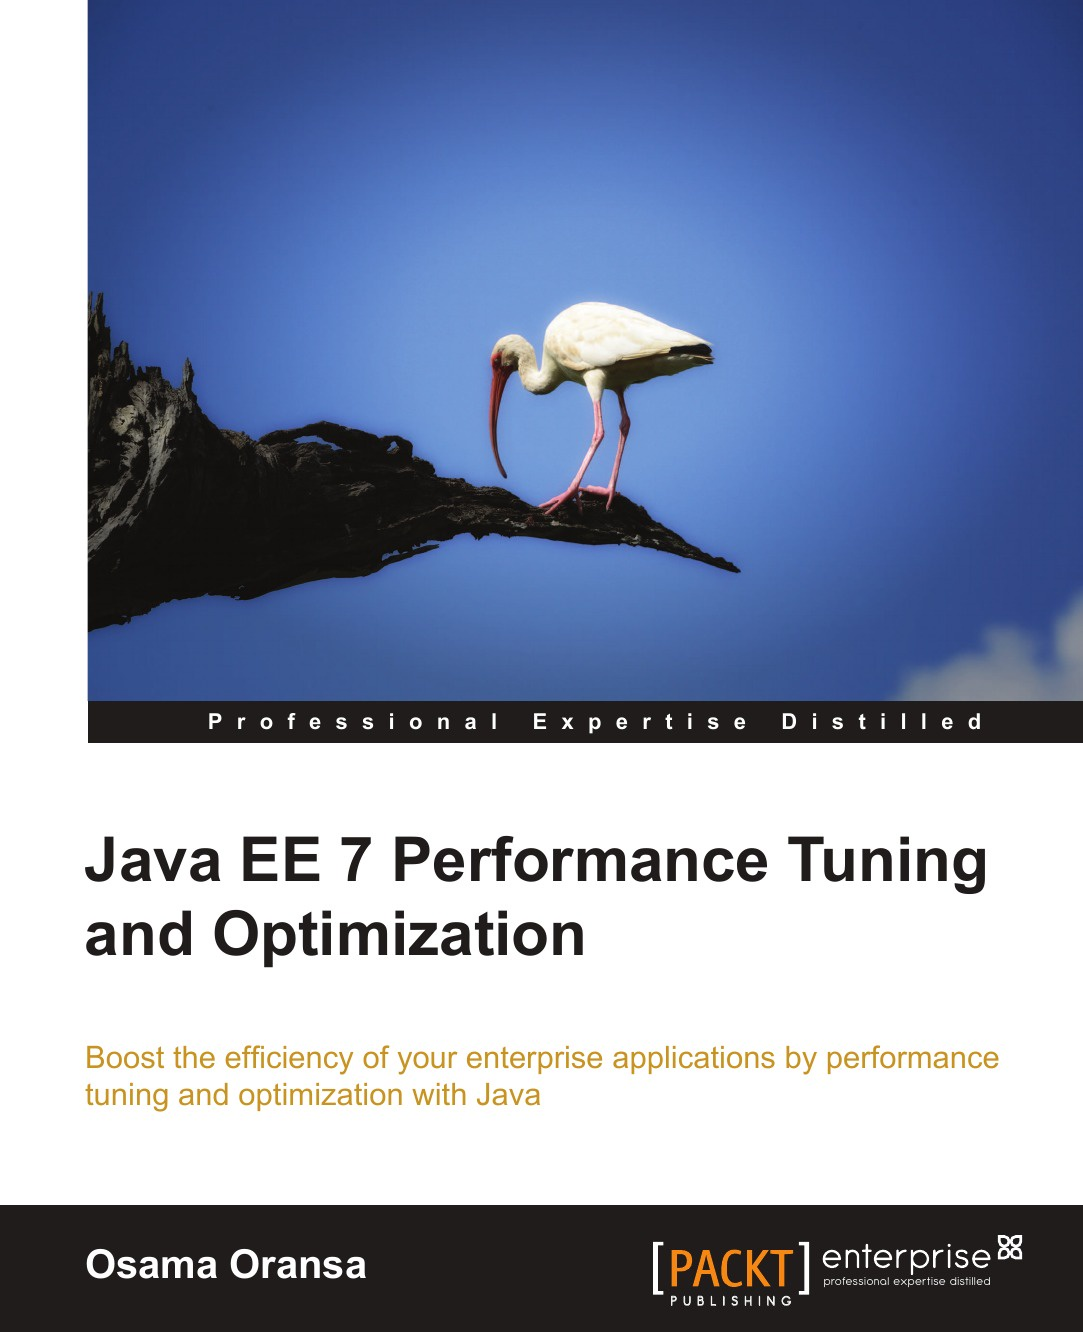 Osama Oransa Java Ee 7 Performance Tuning and Optimization